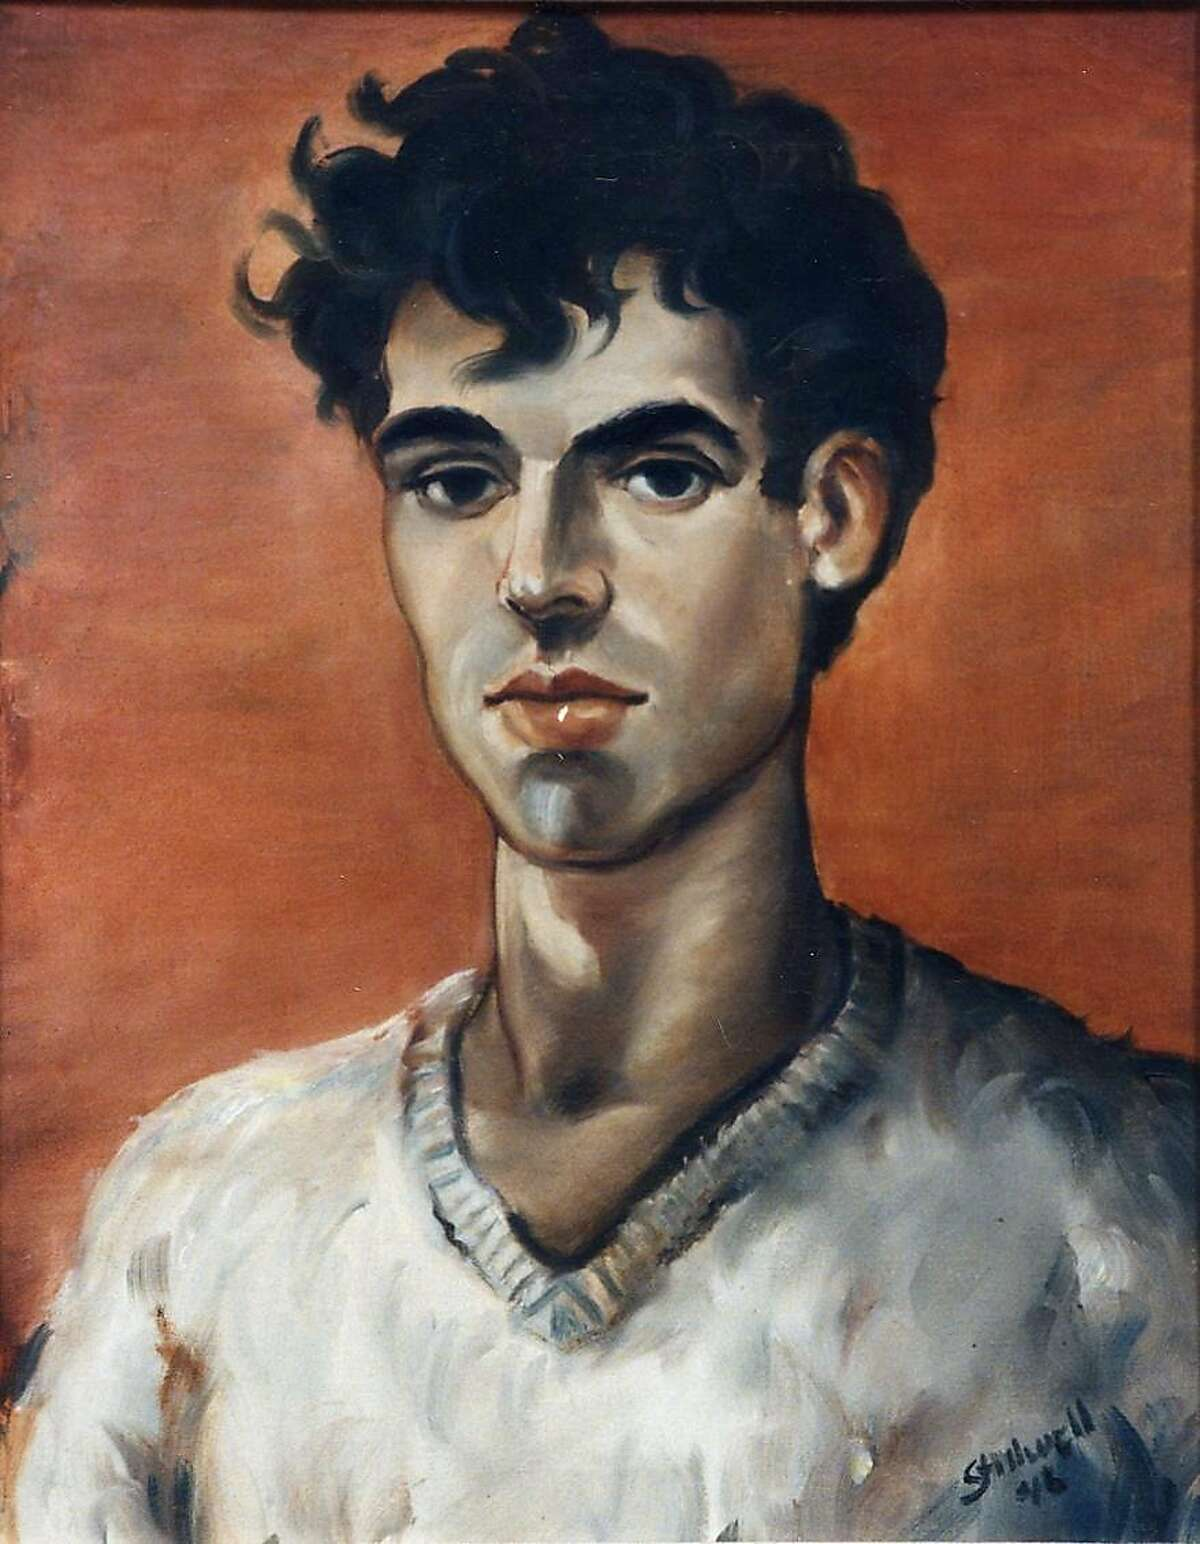 Letters written by San Francisco artist Leo Stillwell, who painted this self-portrait in 1946, two years before he died at age 22, were recently donated to San Francisco State University, which has his complete archive.